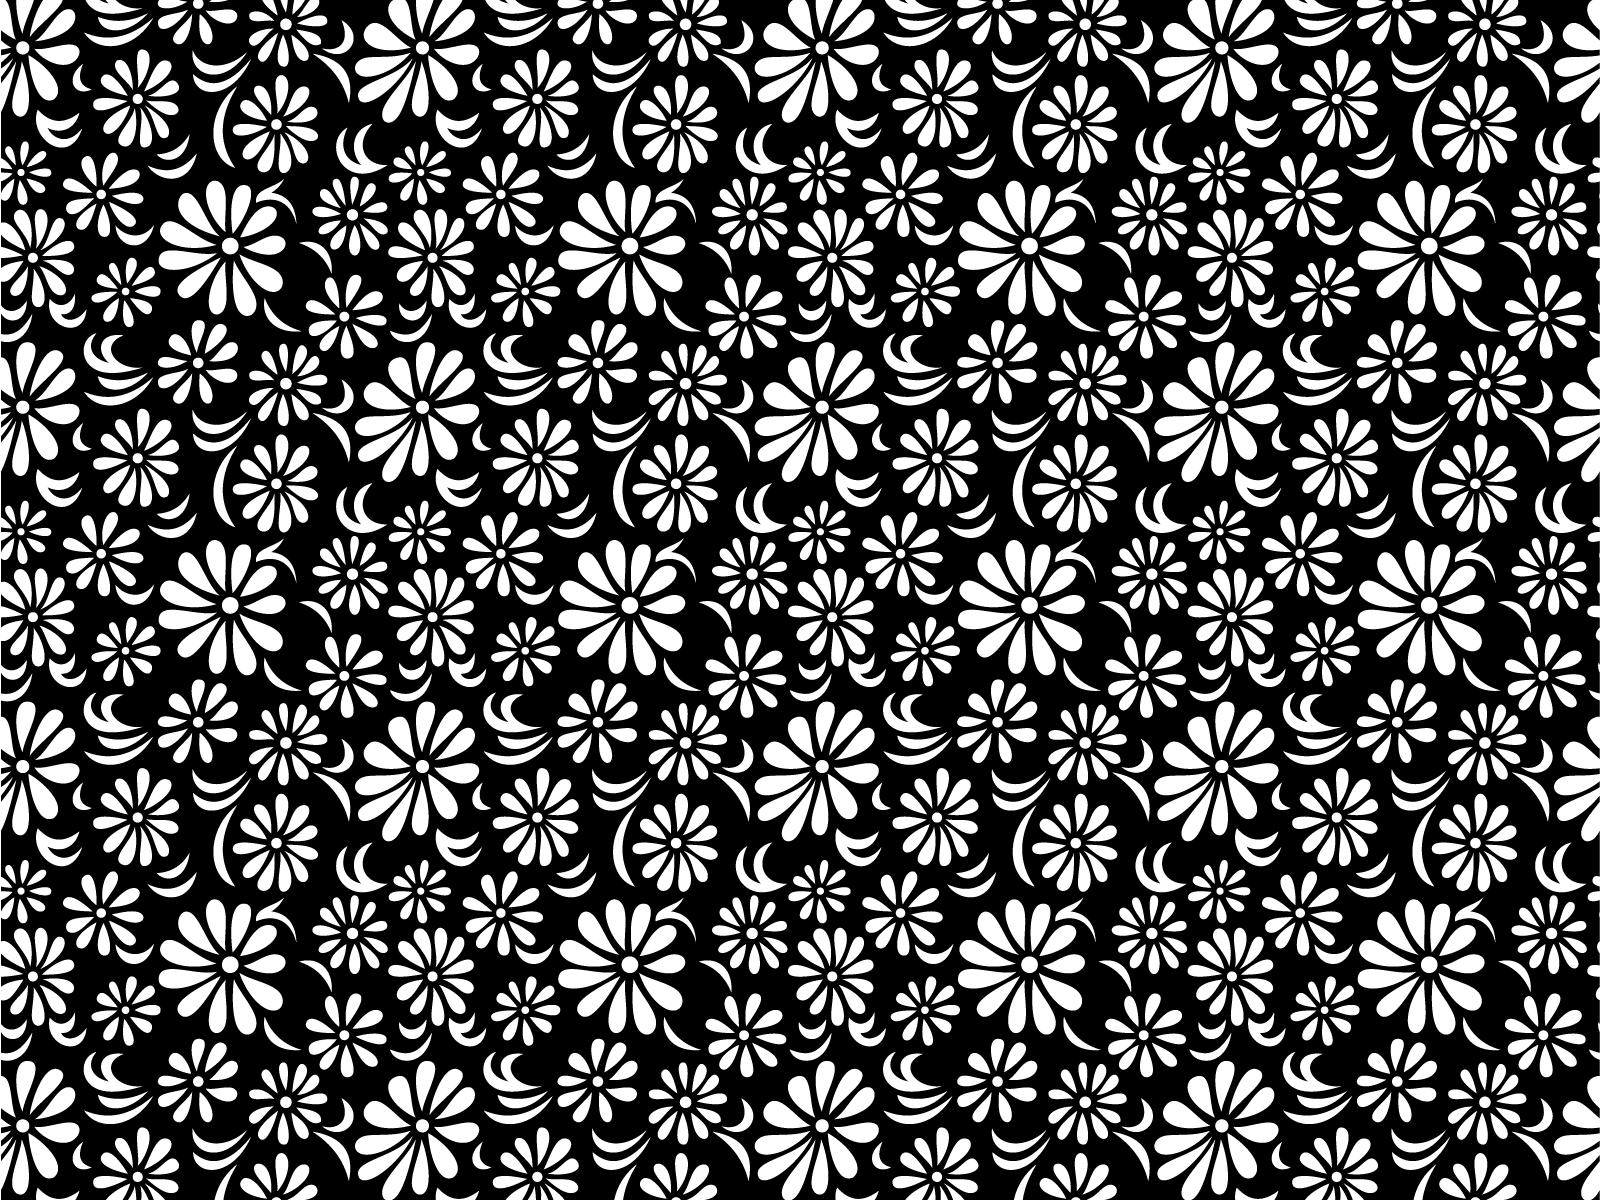 Black White Floral Backgrounds Black Flowers White Templates